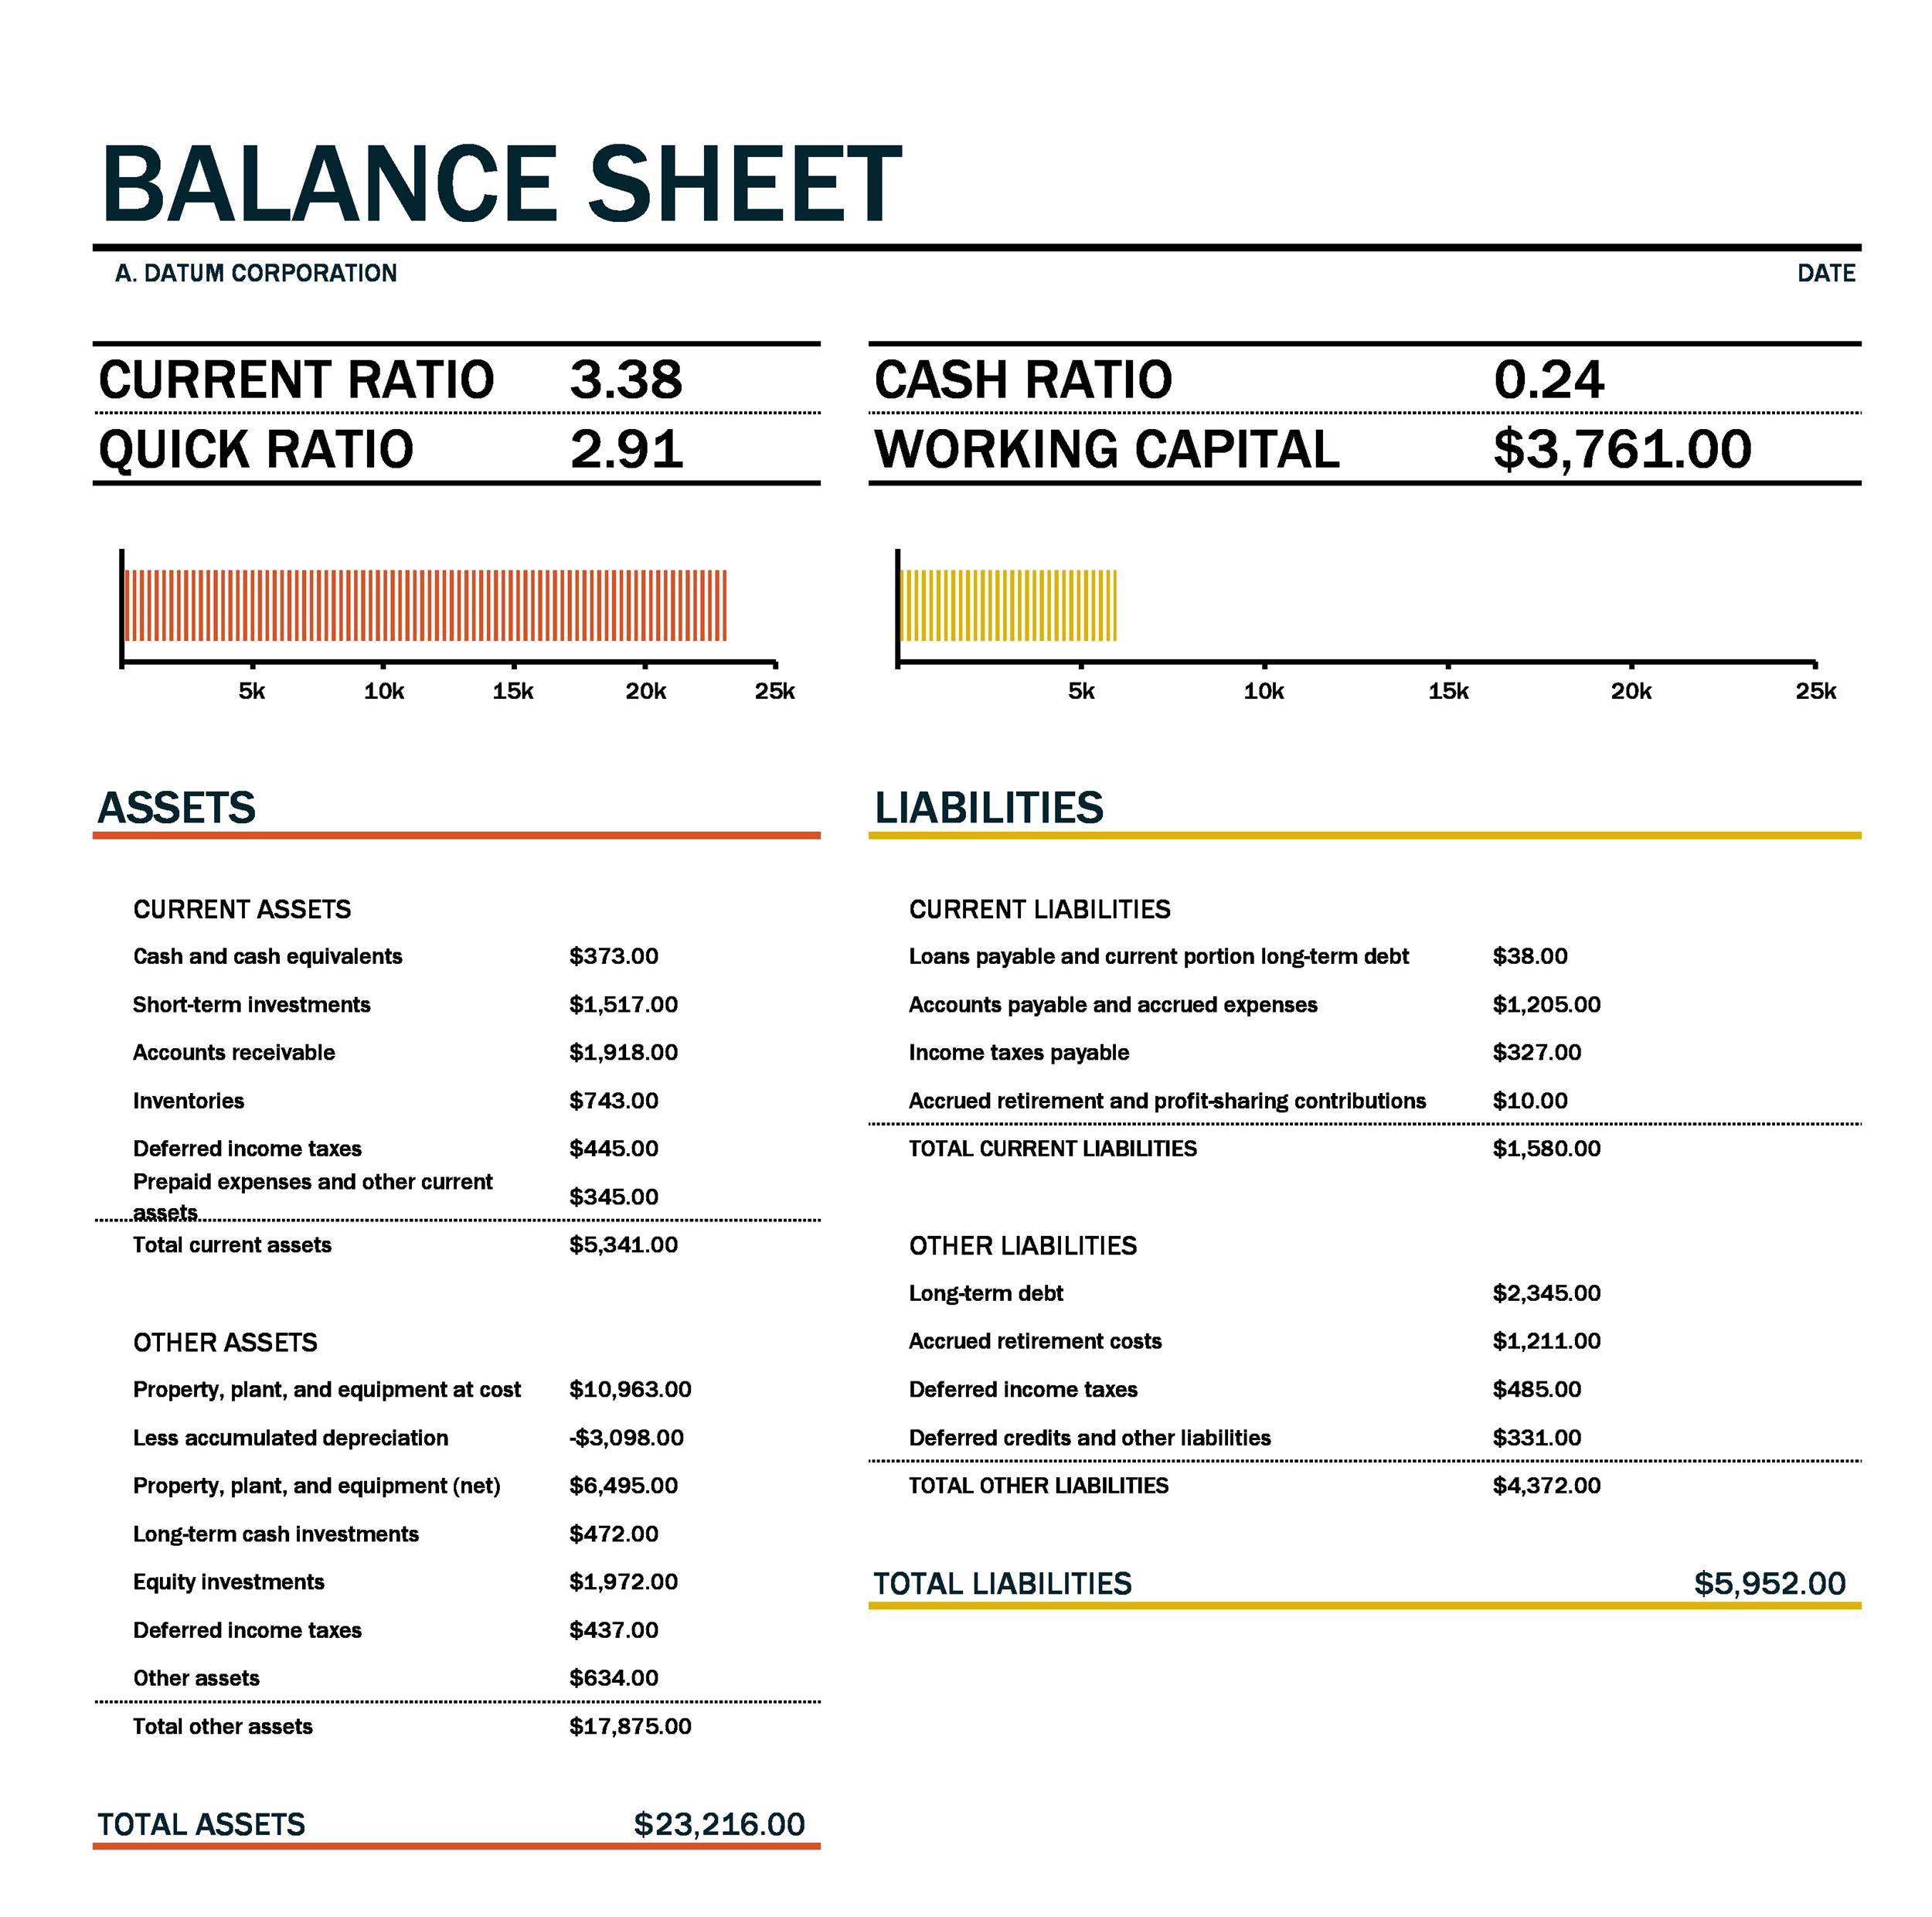 Balance Sheet Template Free | Balance Sheets Template East Keywesthideaways Co